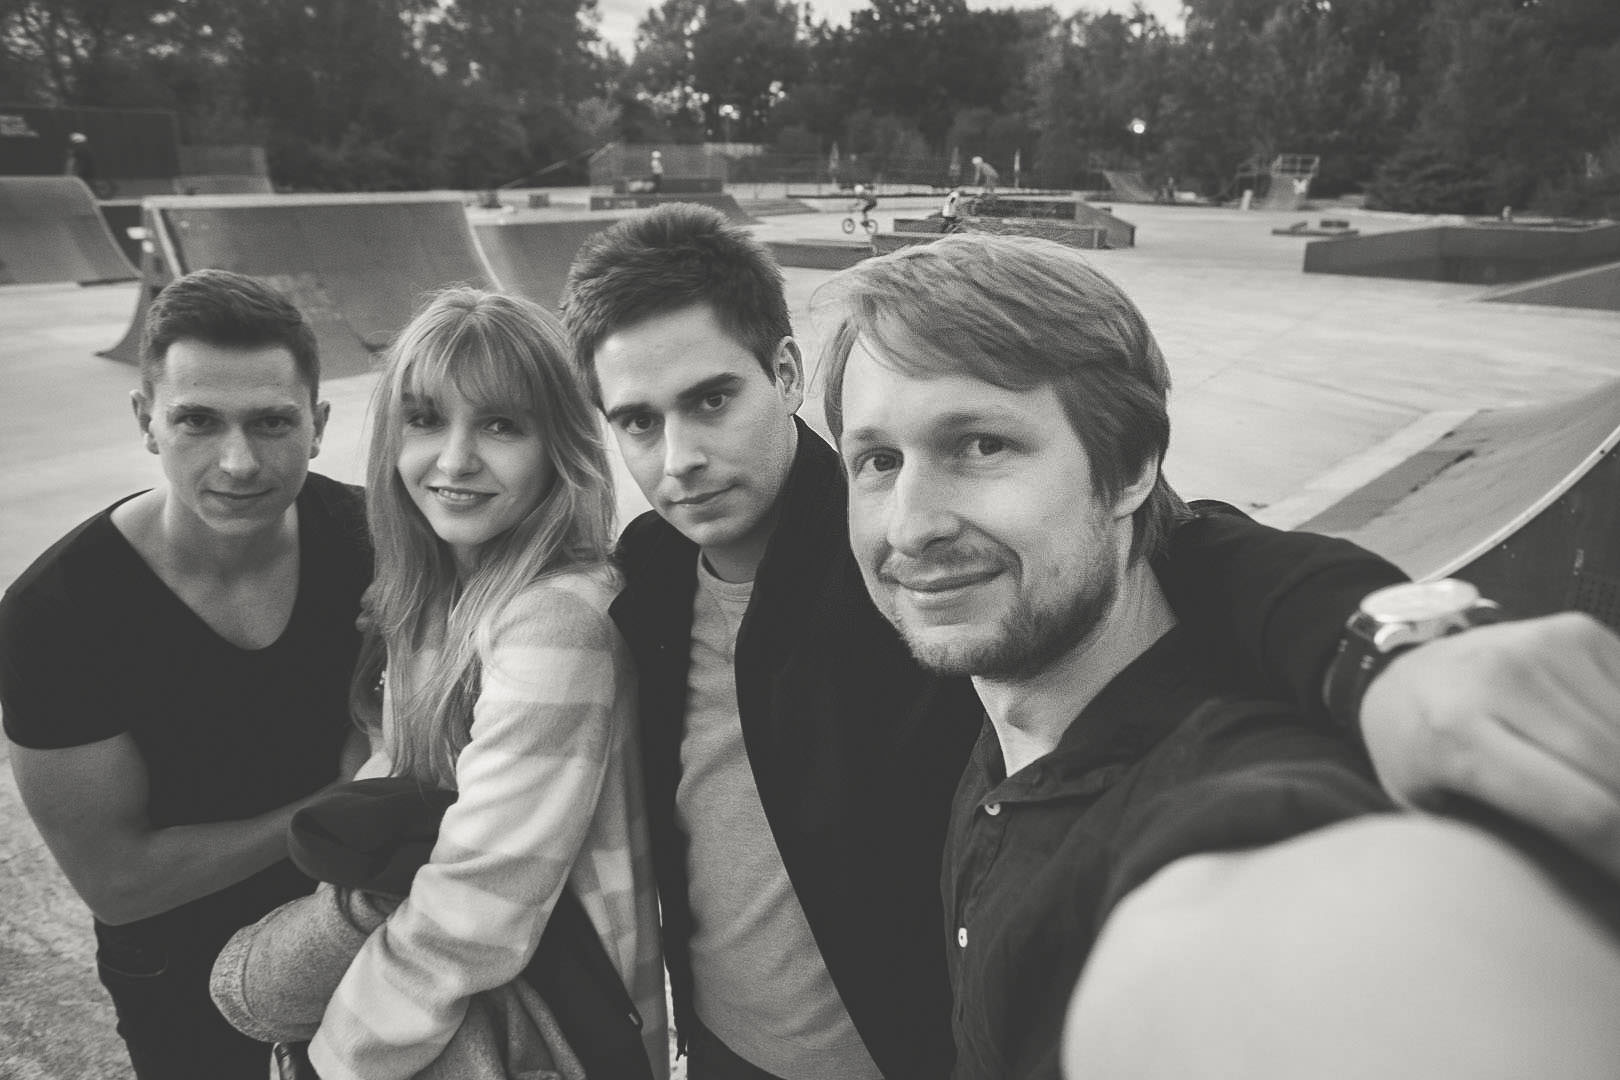 NapoGloves_winter_campaign_2015_19